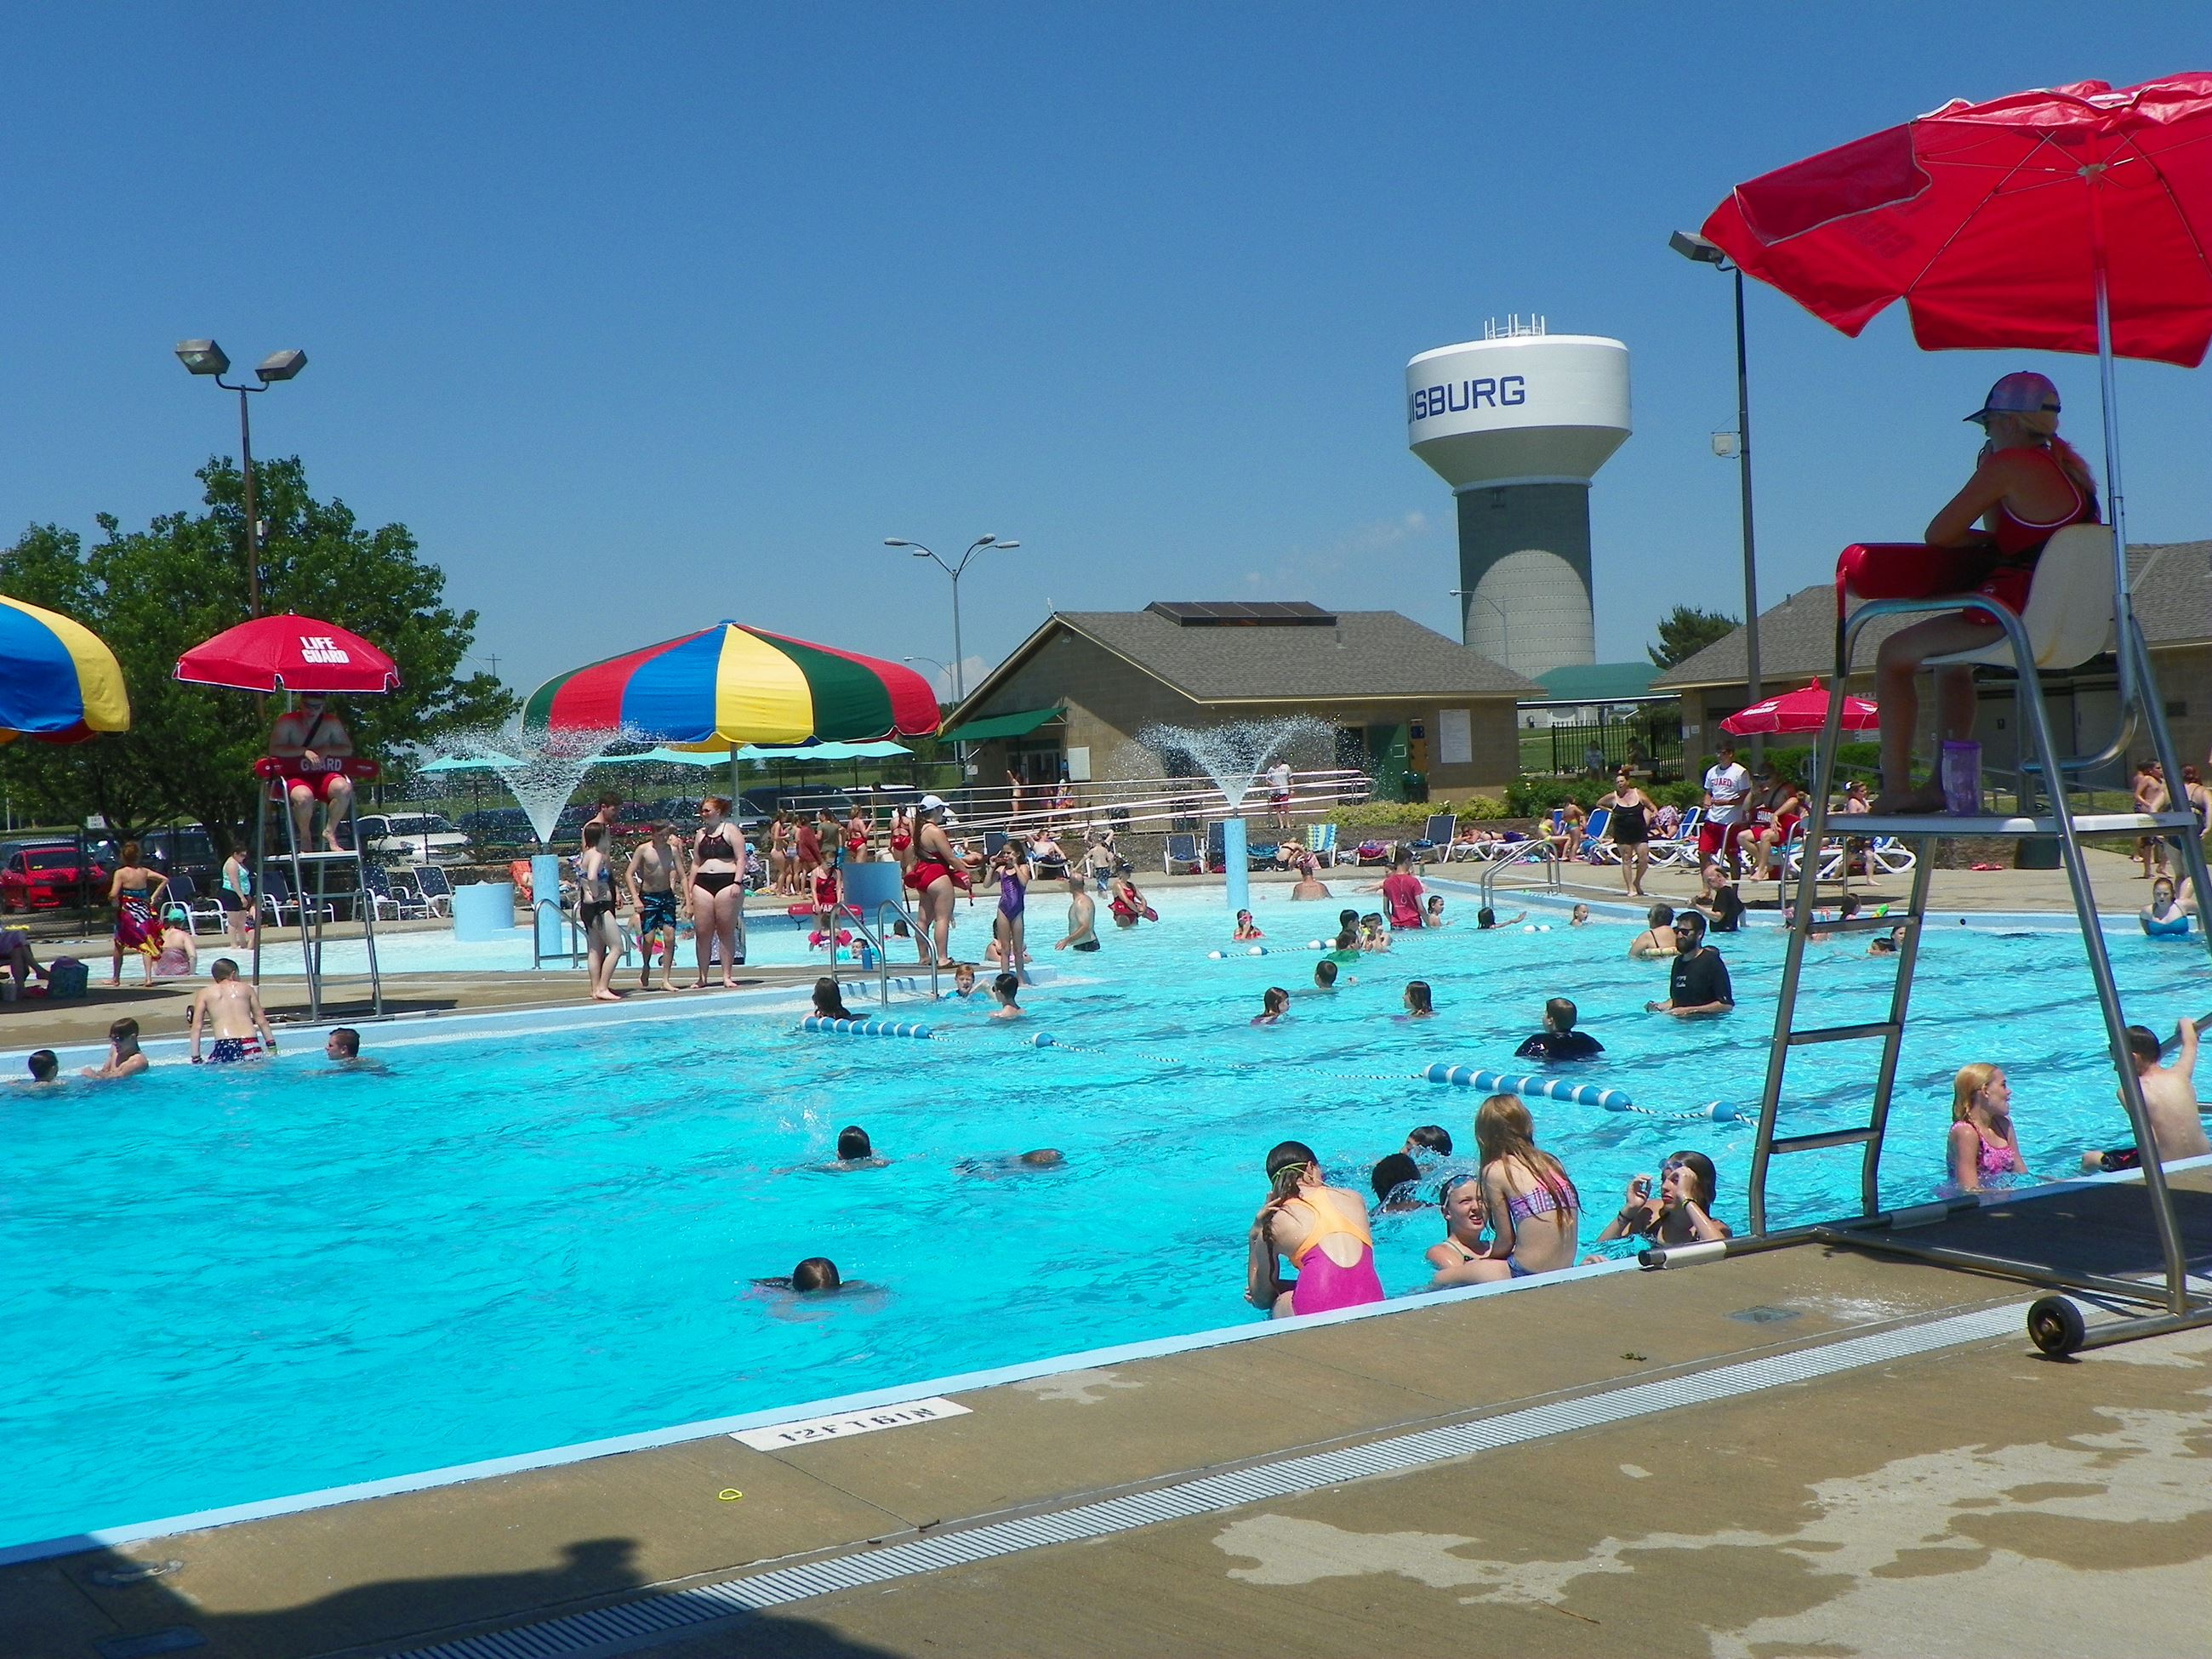 Louisburg Aquatic Center